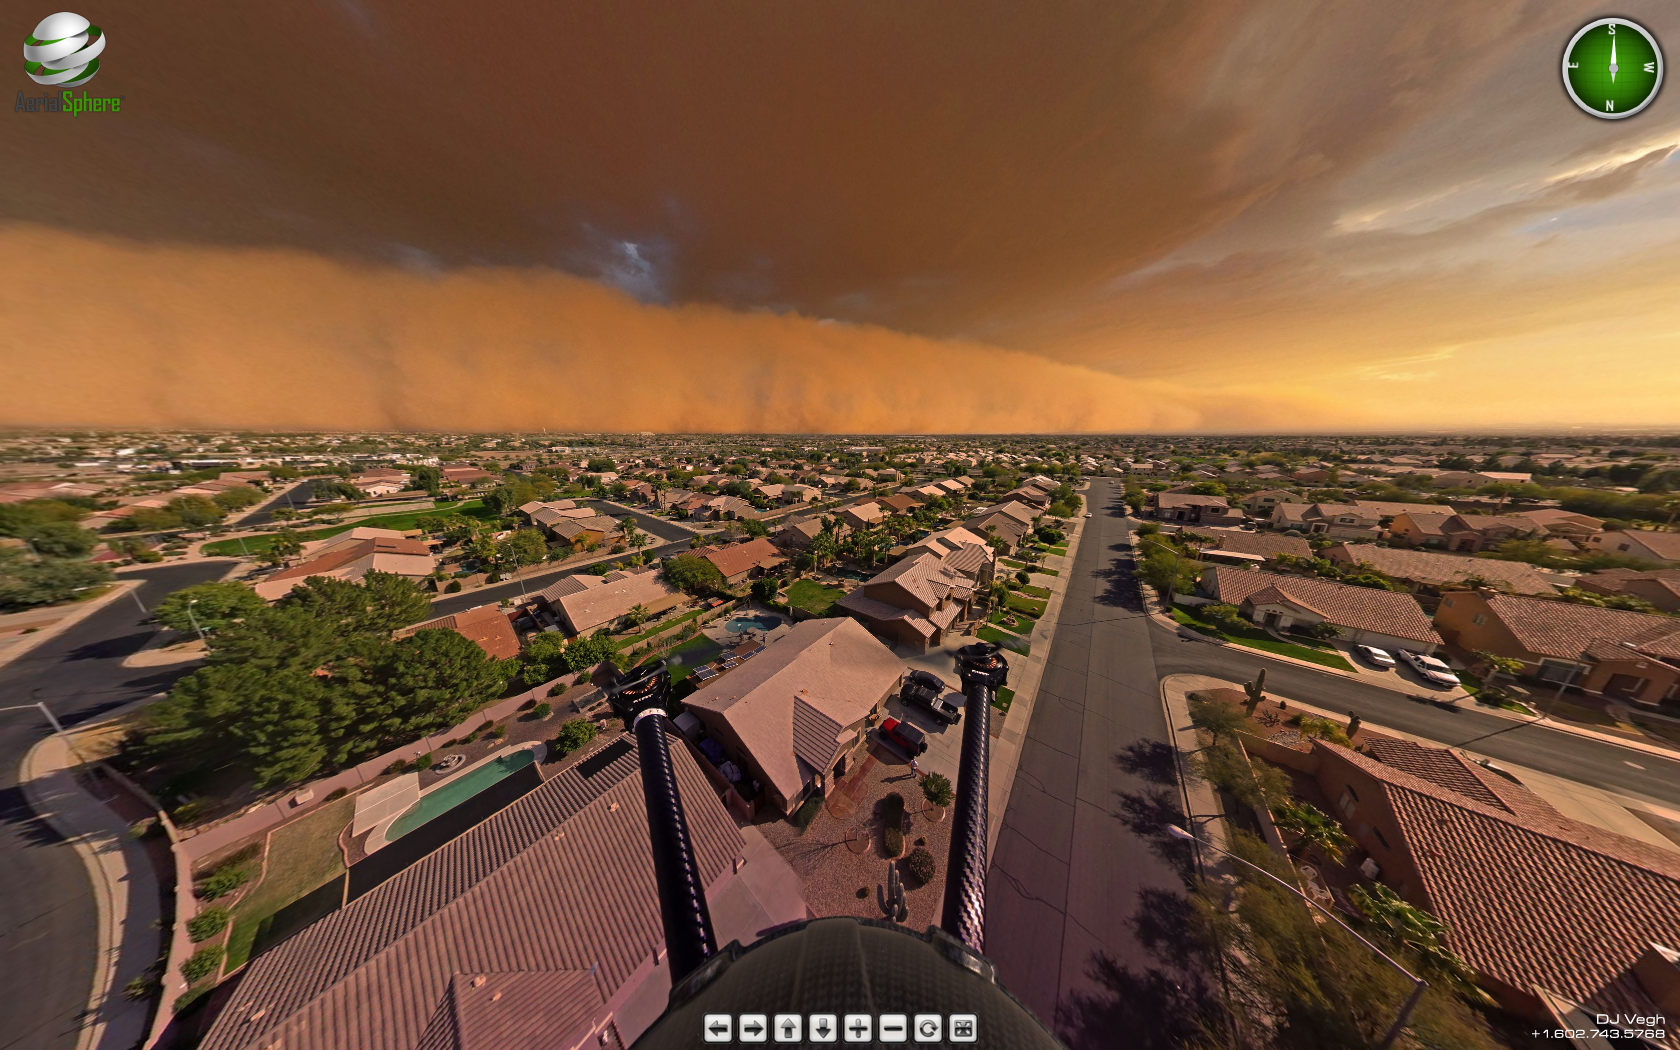 Amazing 360 degree look at a Haboob Dust Storm in PHX   Imgur 1680x1050